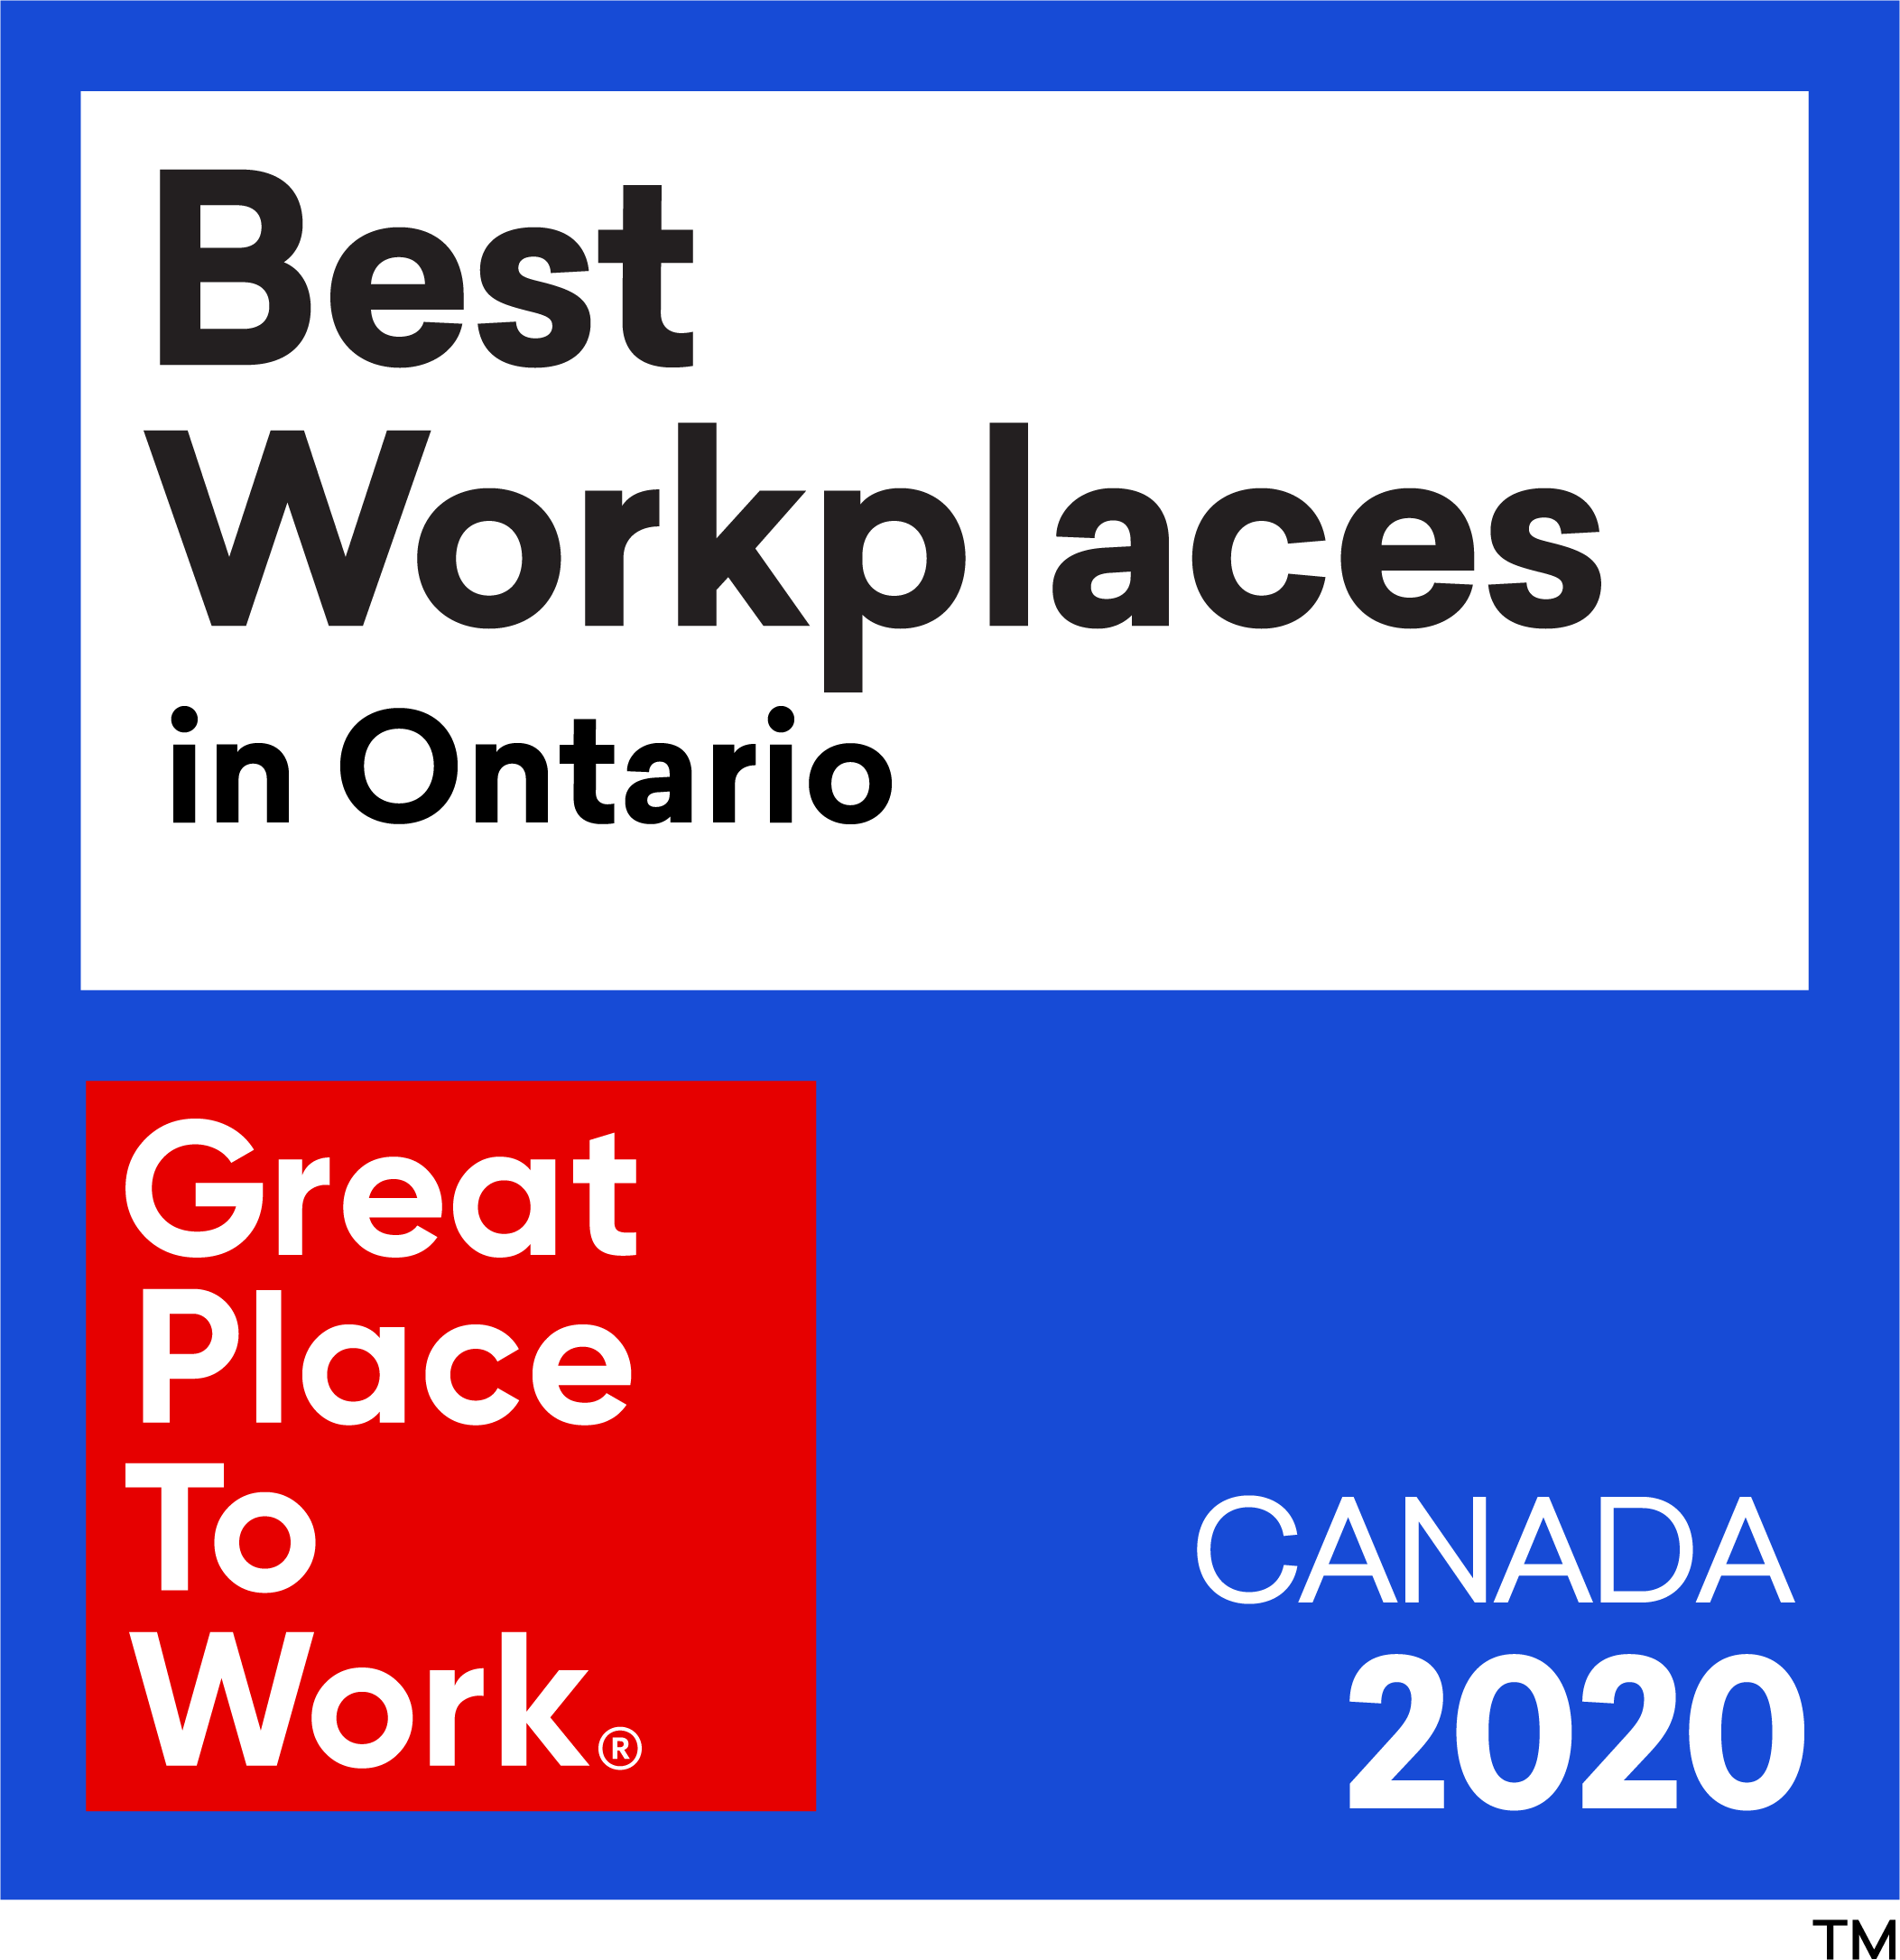 Best_Workplaces in Ontario 2020